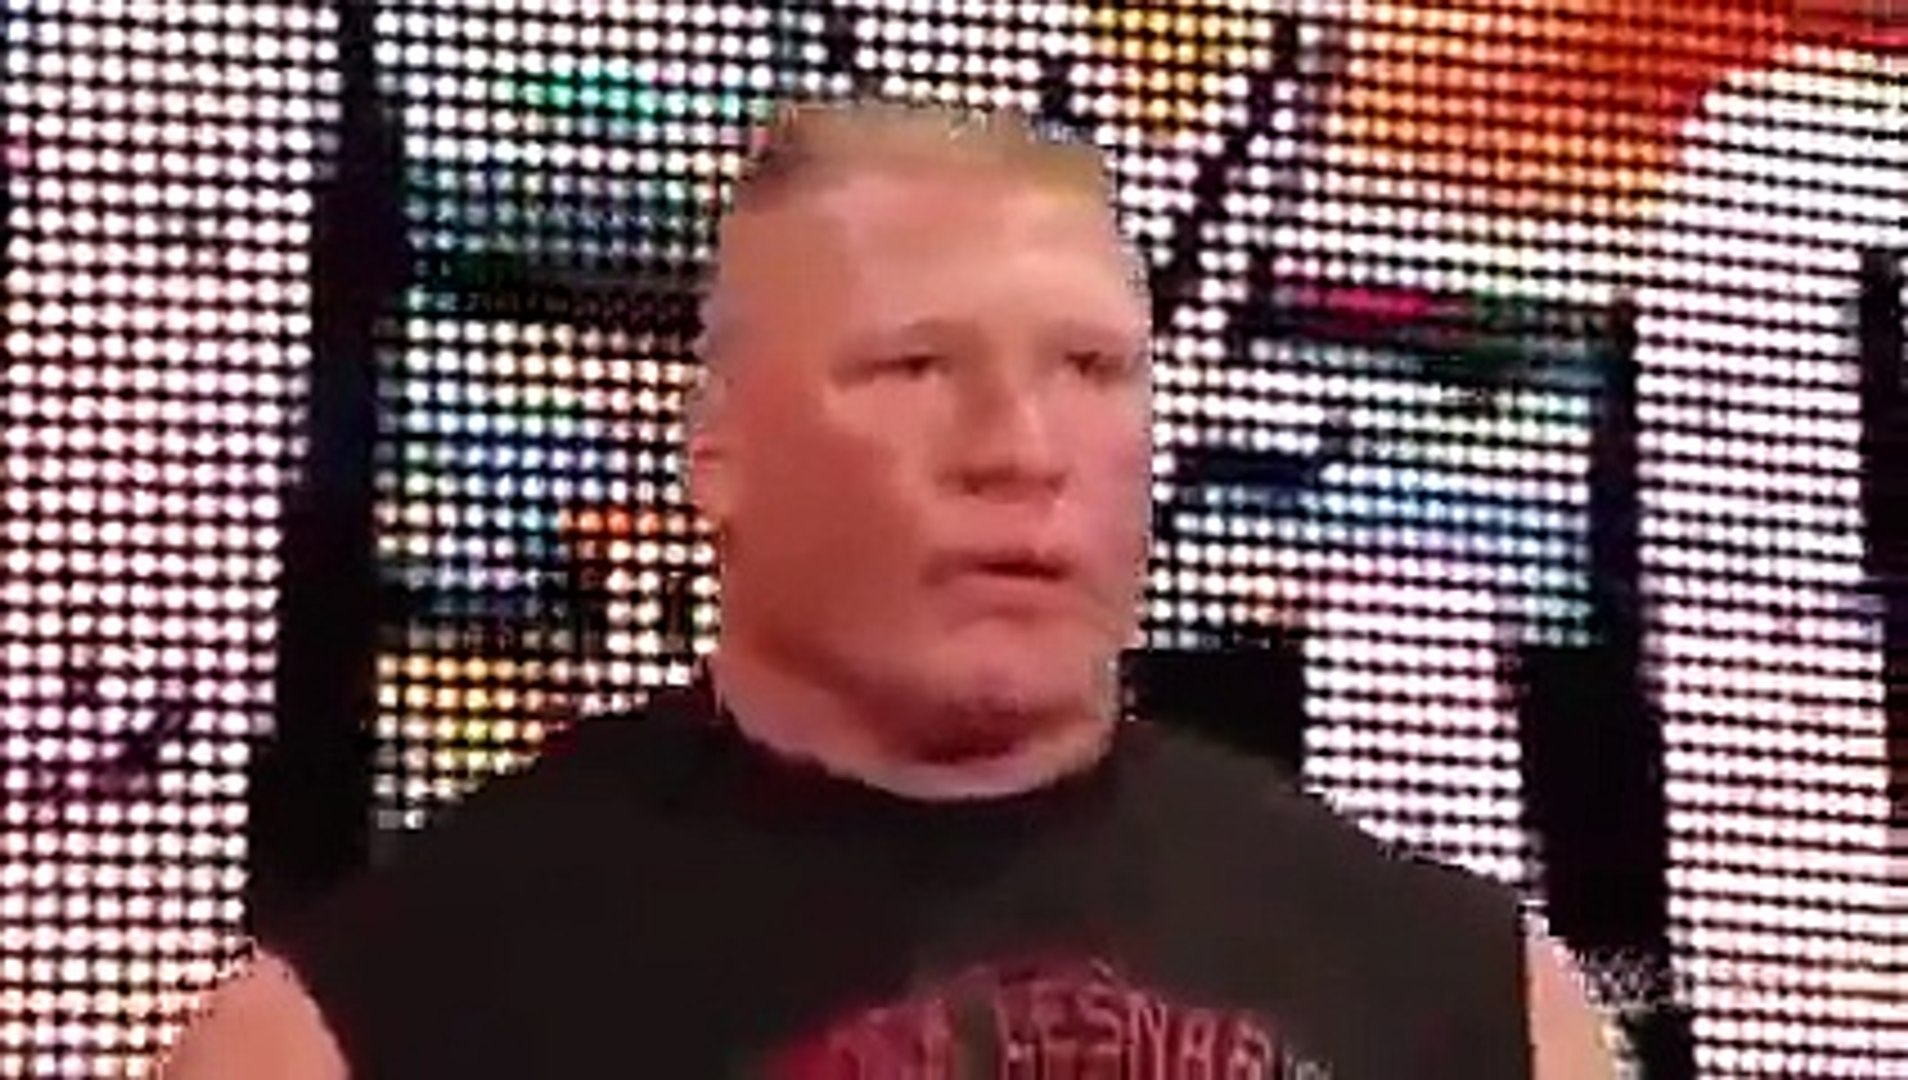 WWE RAW - Brock Lesnar confronts The Undertaker before Hell in a Cell - WWE October 2015 - Video Dai